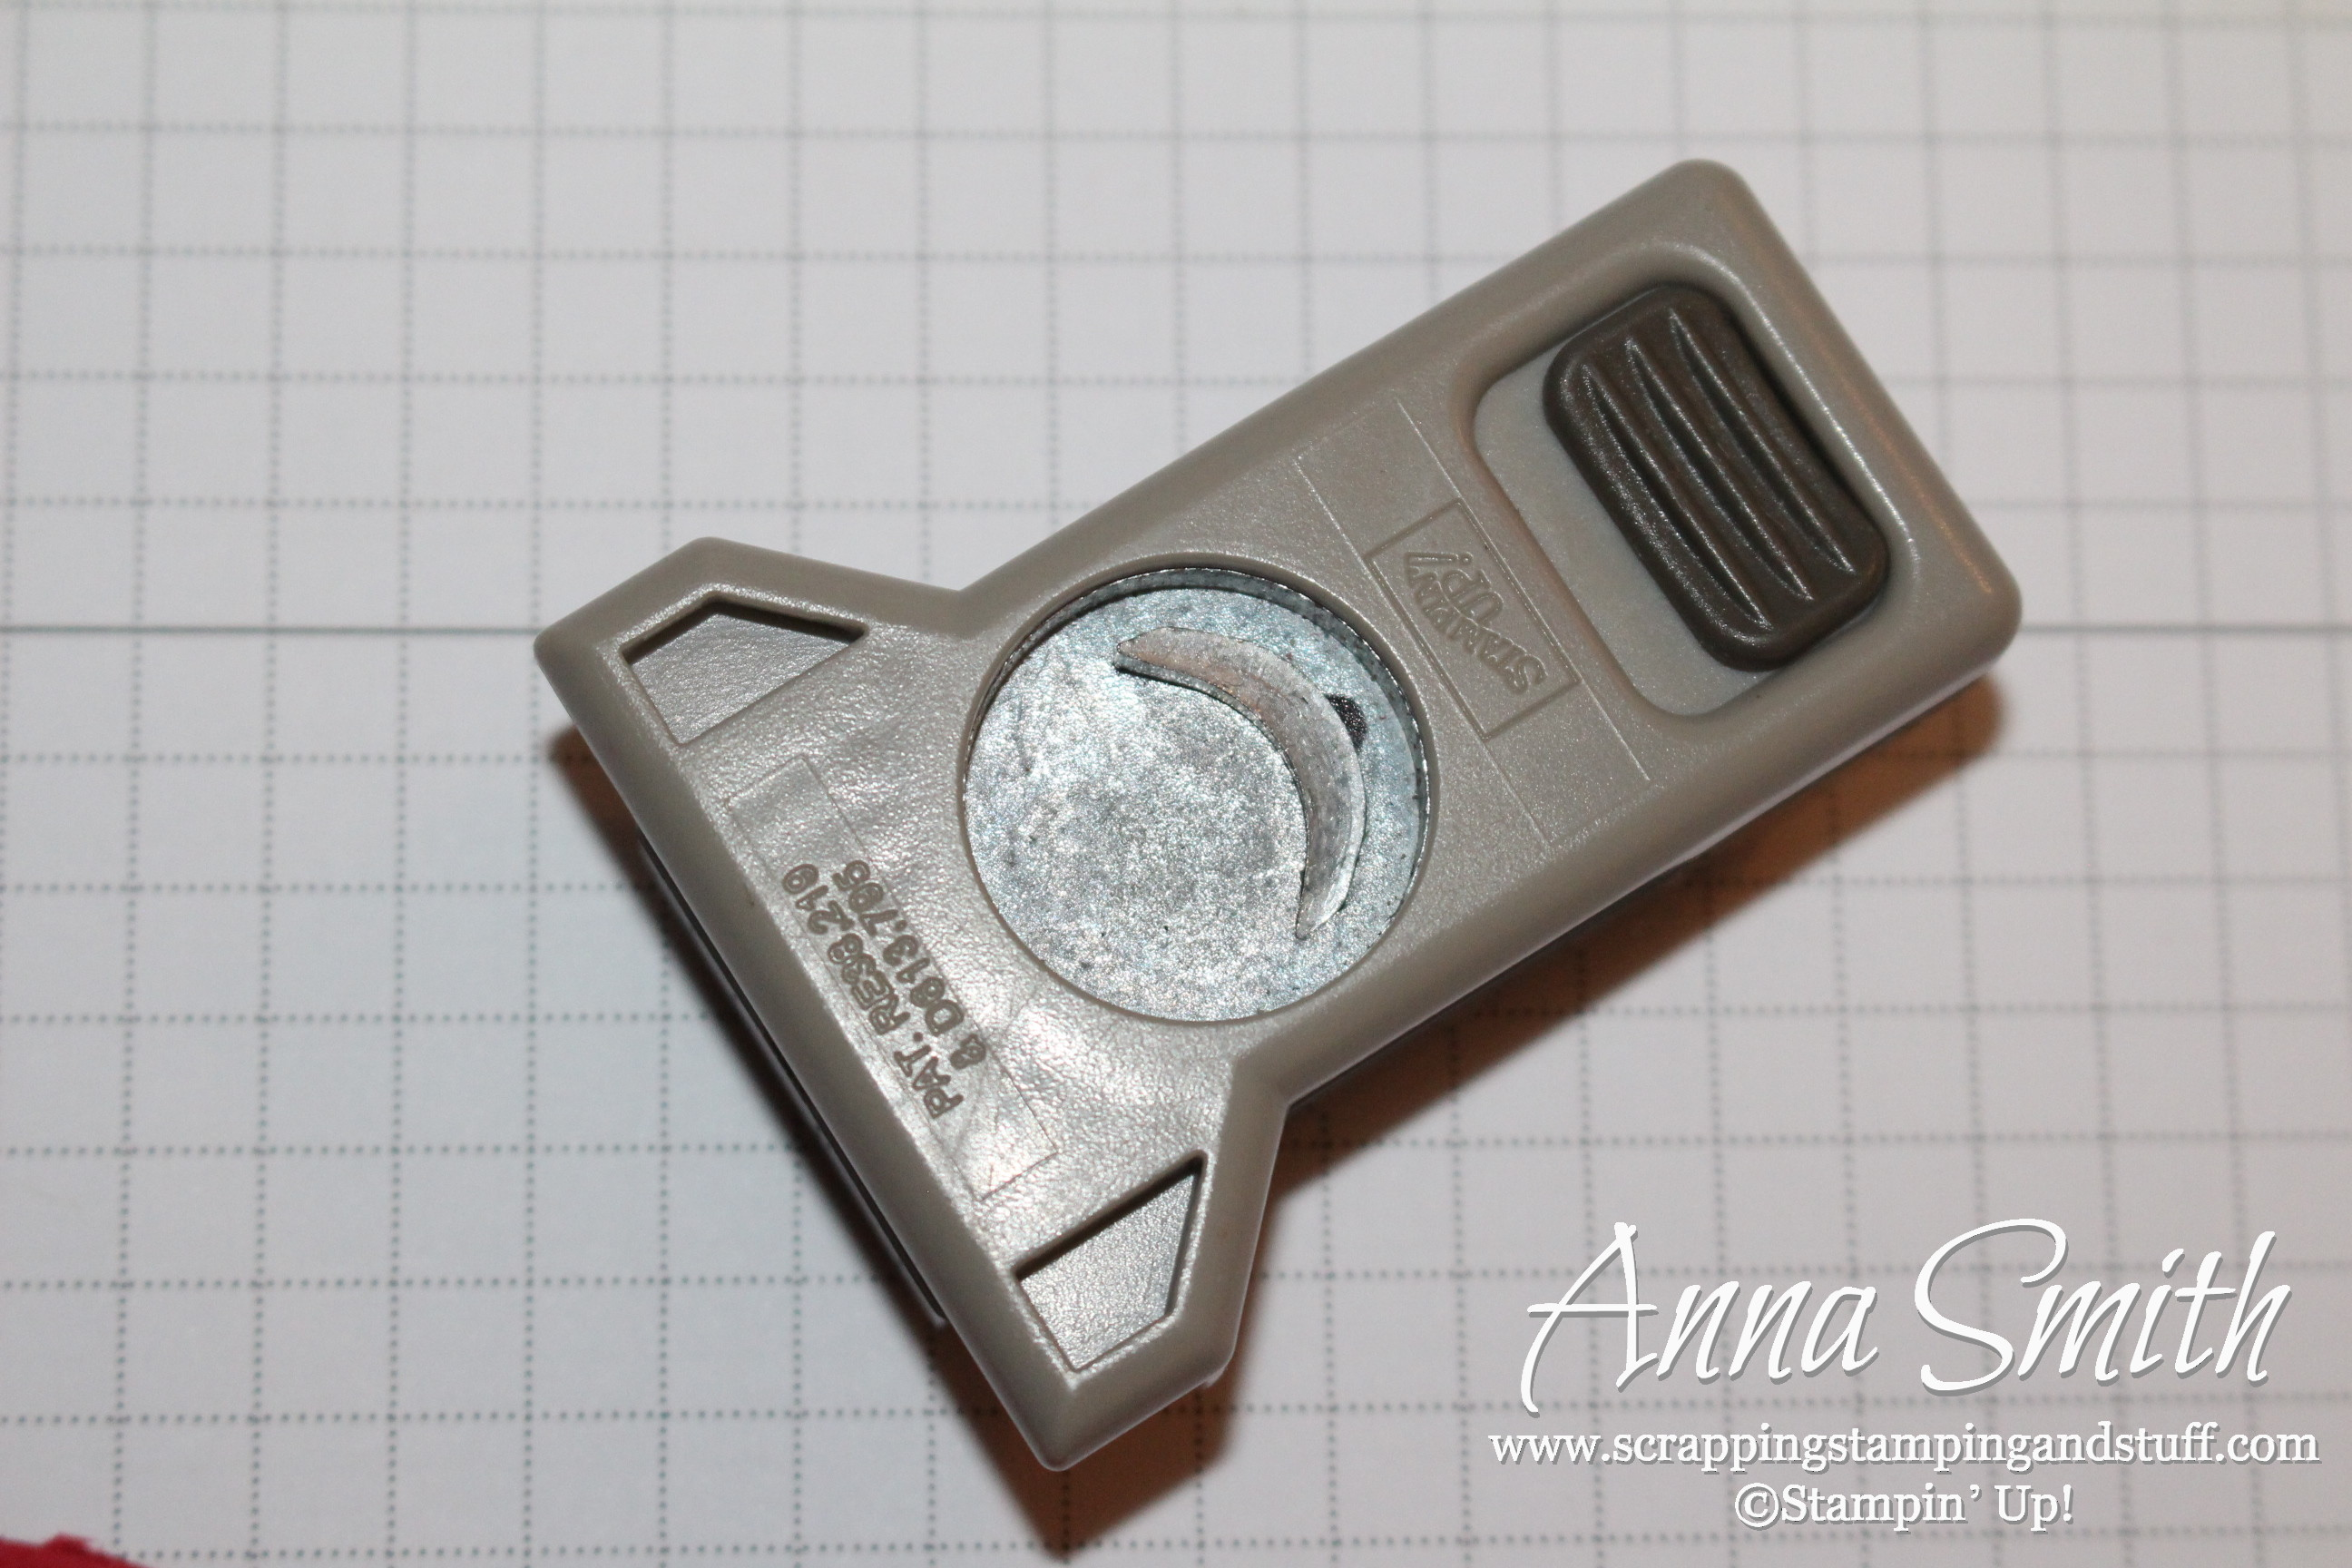 Tips For Using The Project Life Corner Punch Scrapping Stamping